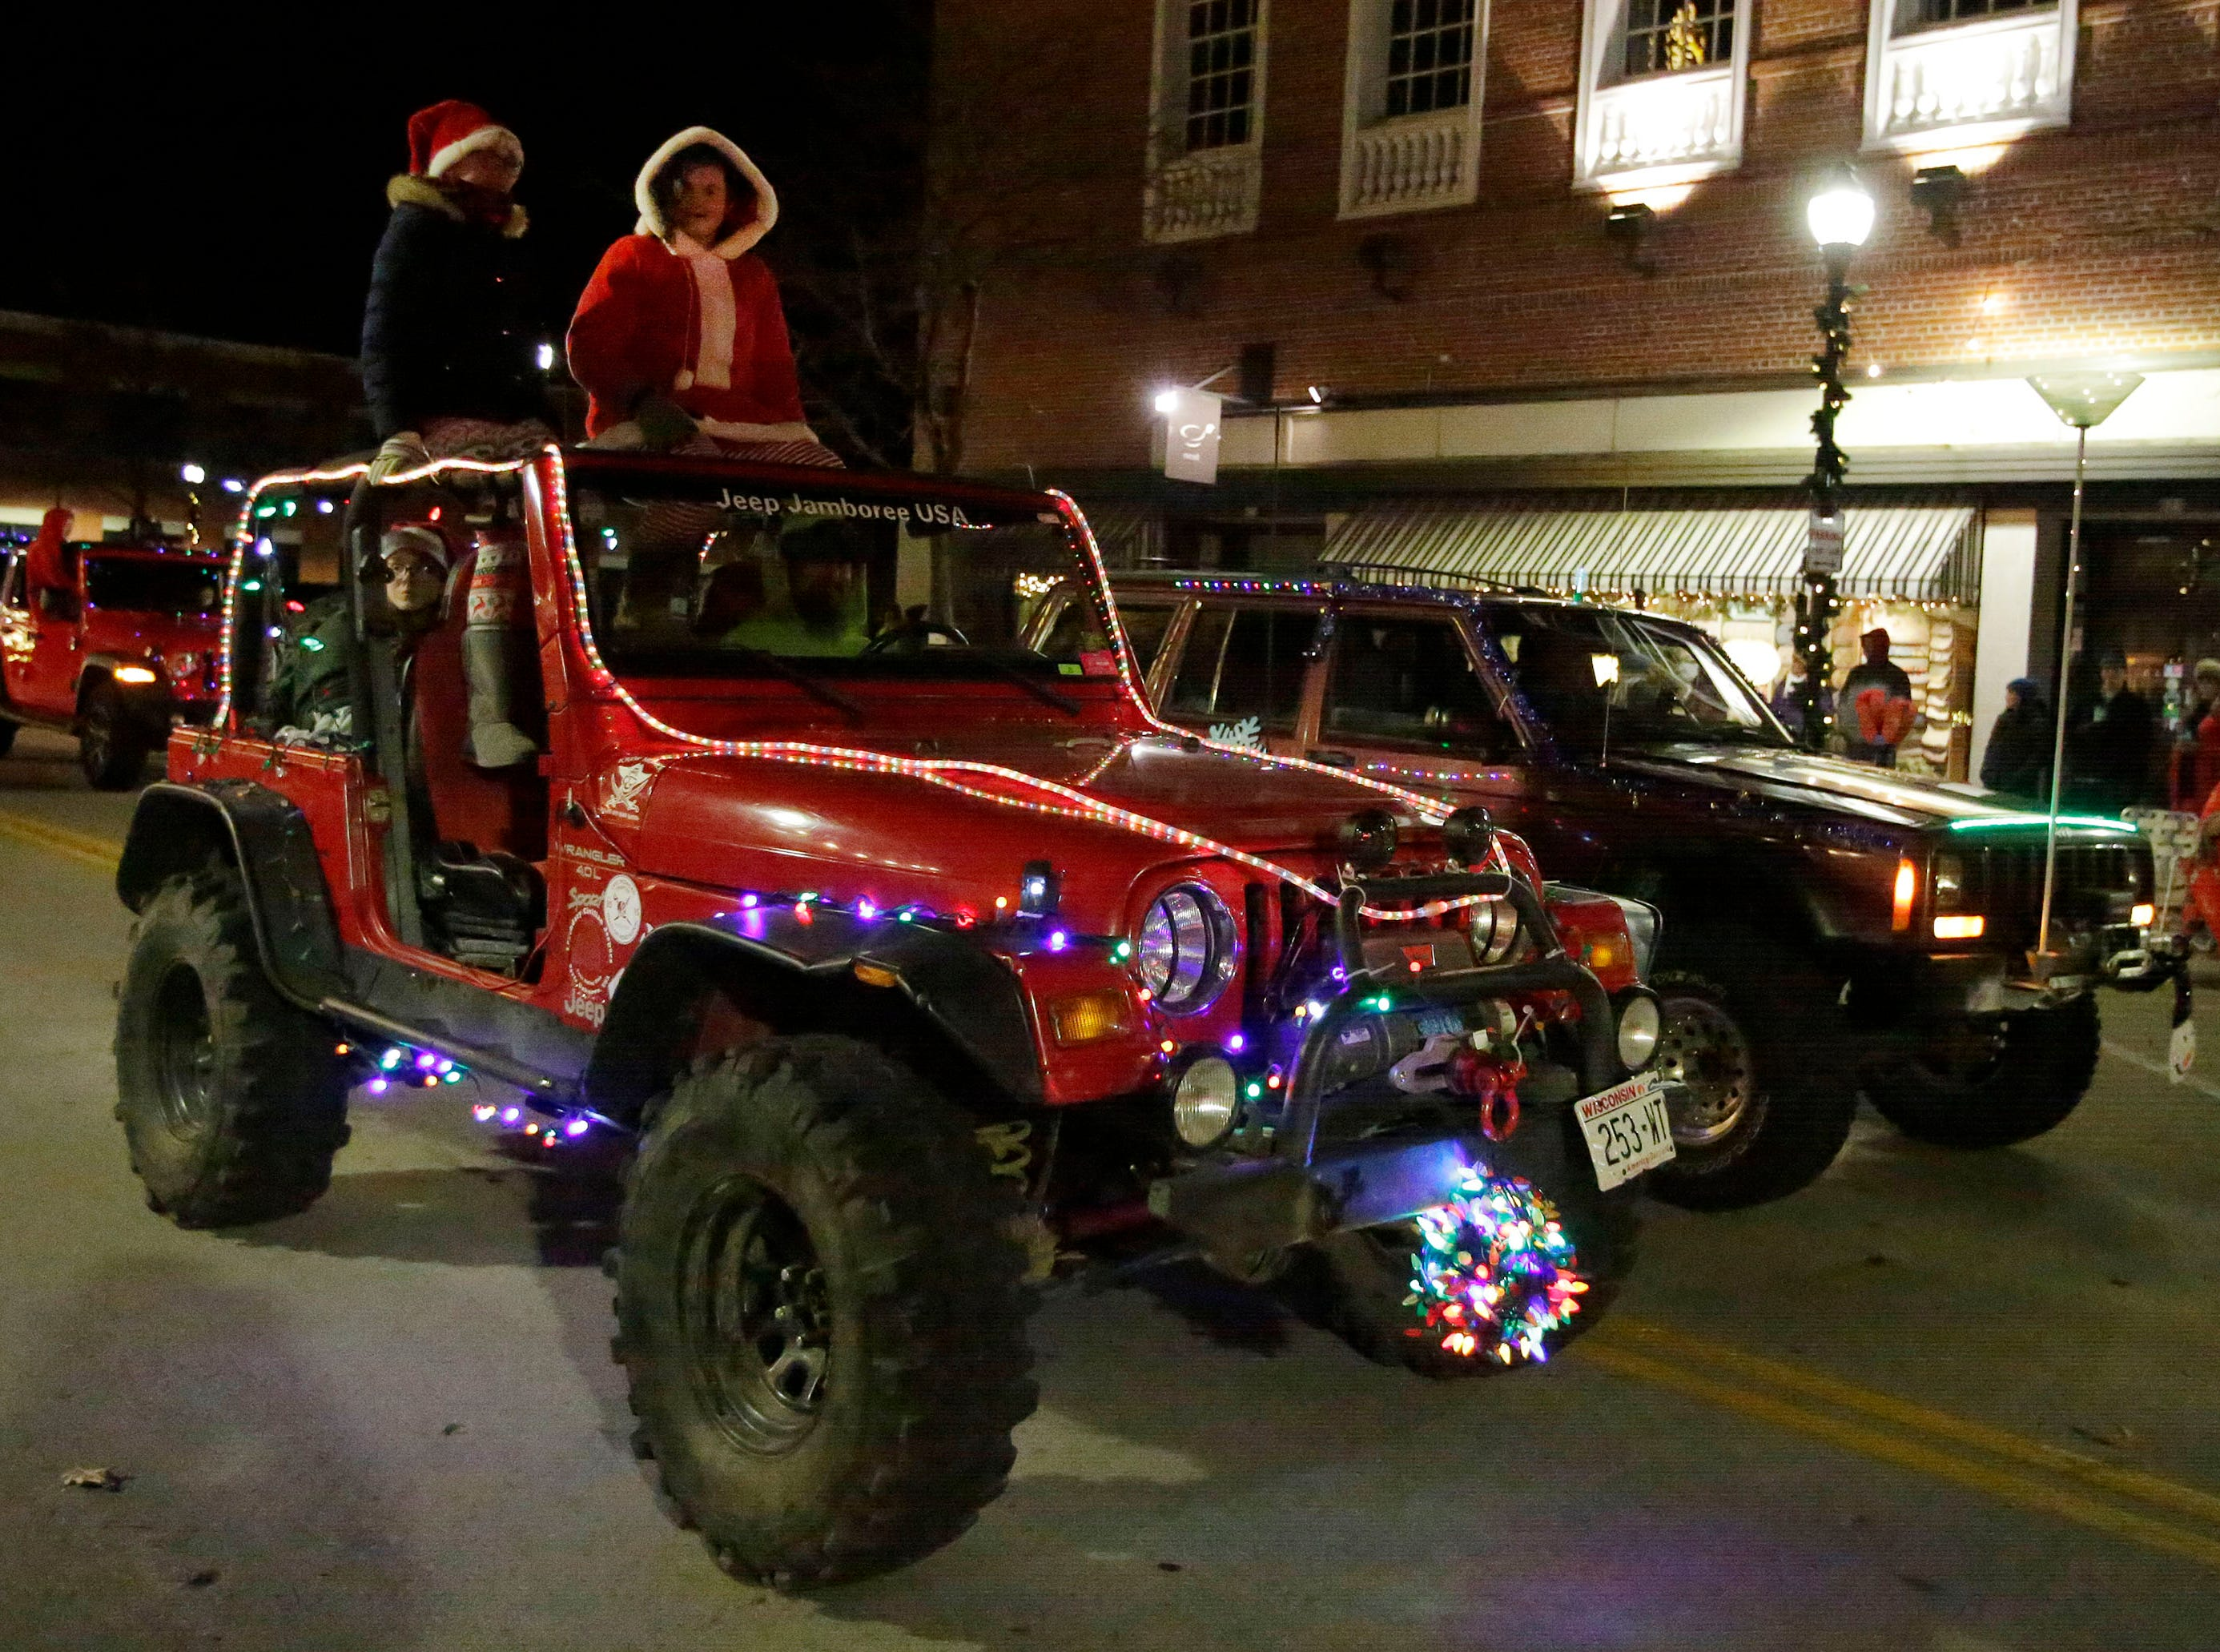 Jeeps are ready for the holidays at the 26th Annual Jaycees Holiday Parade, Sunday, November 25, 2018 in Sheboygan, Wis. Wrangler Jeeps came in first in the non profit division in the parade.